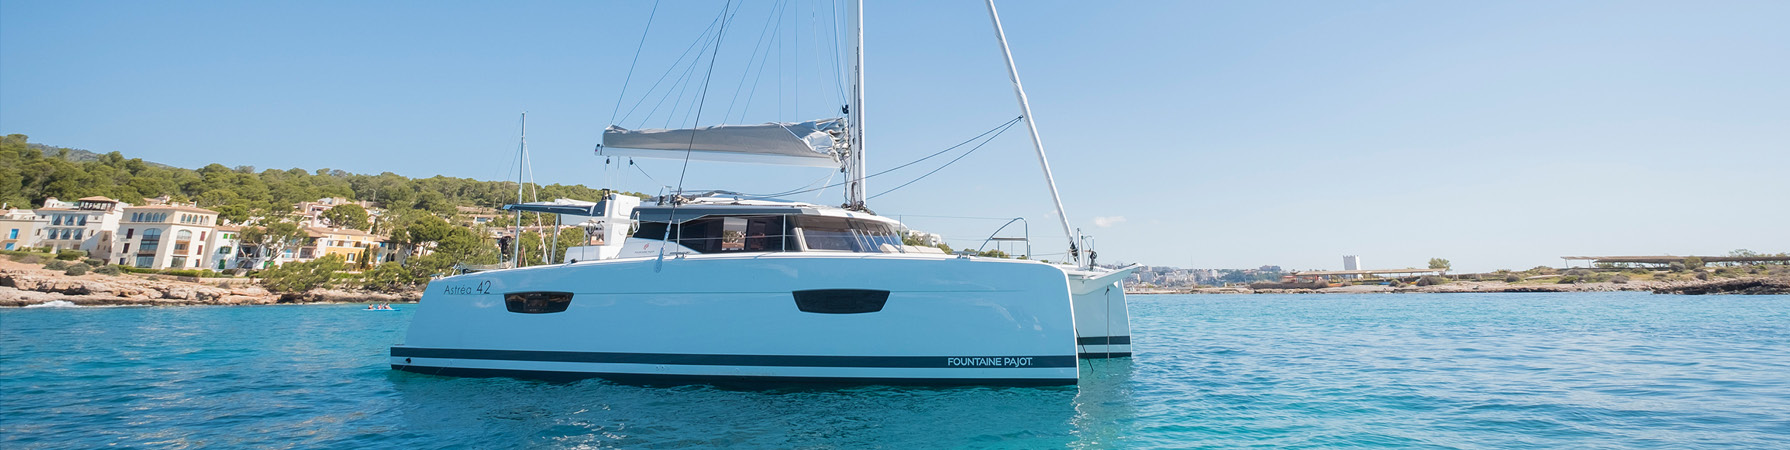 Photo-Catamaran-Sailing-Astrea-42-Fountaine-Pajot